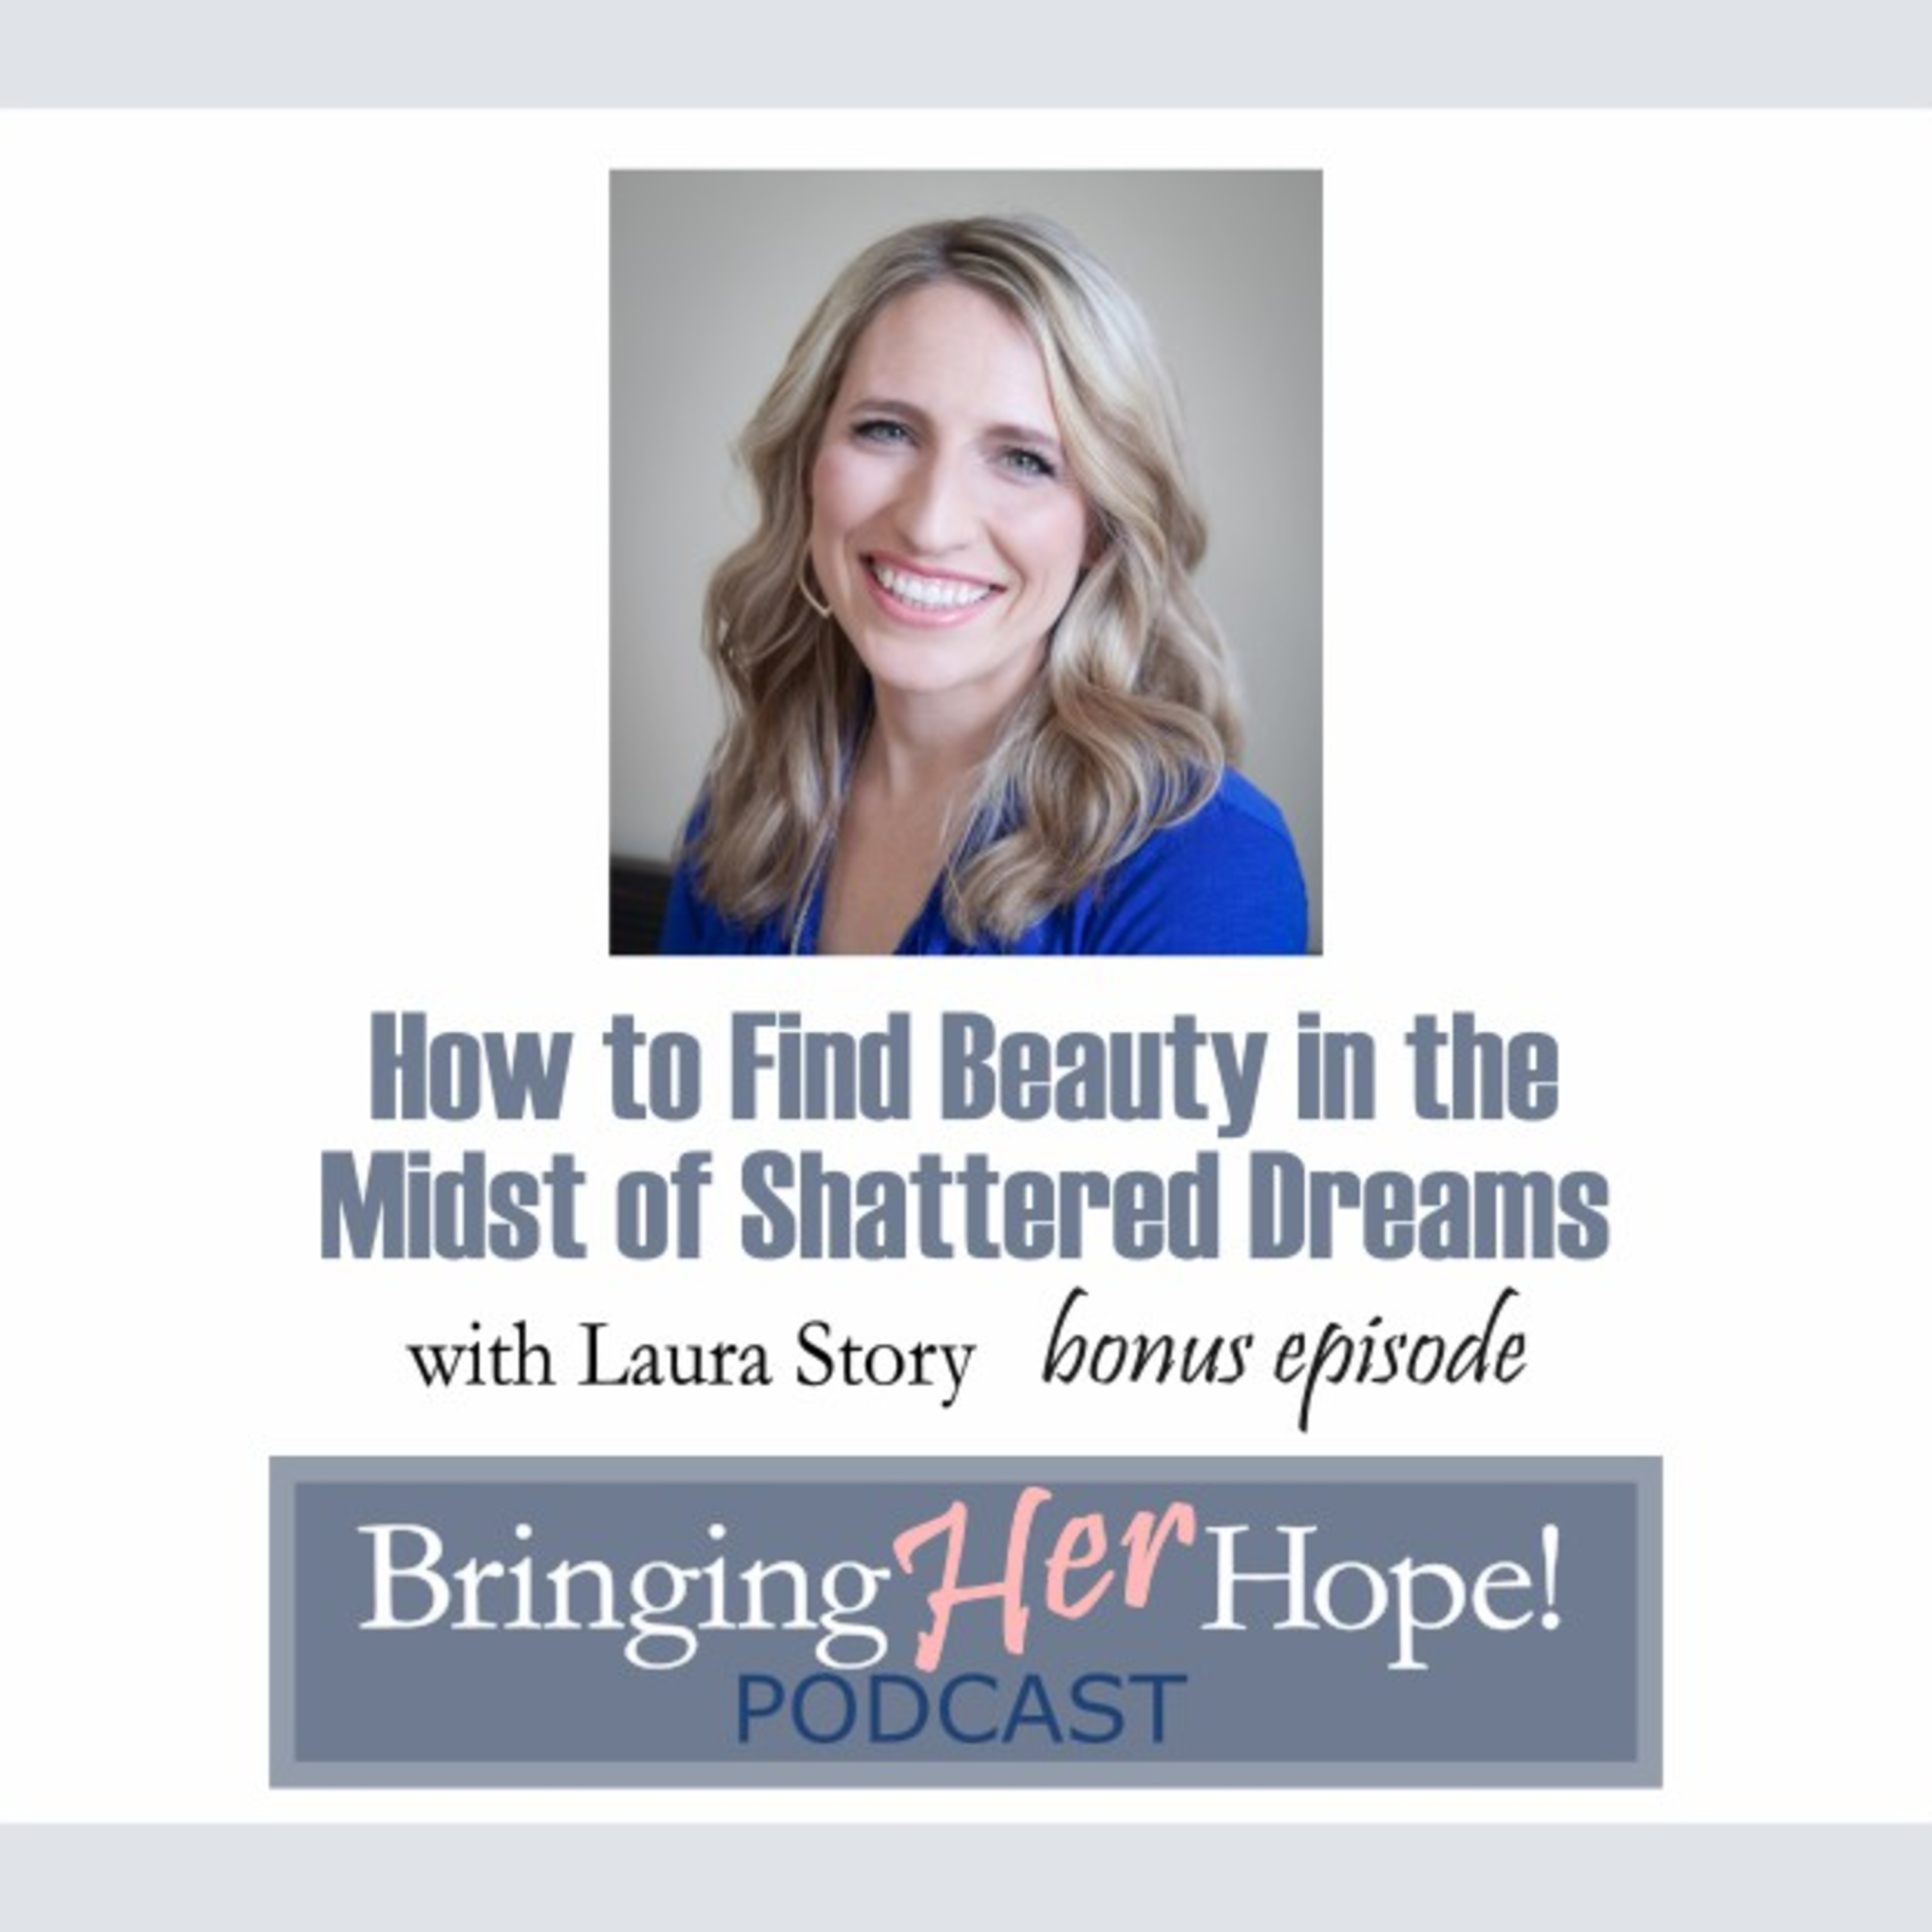 BONUS EPISODE with special guest Laura Story: How to find beauty in the midst of shattered dreams